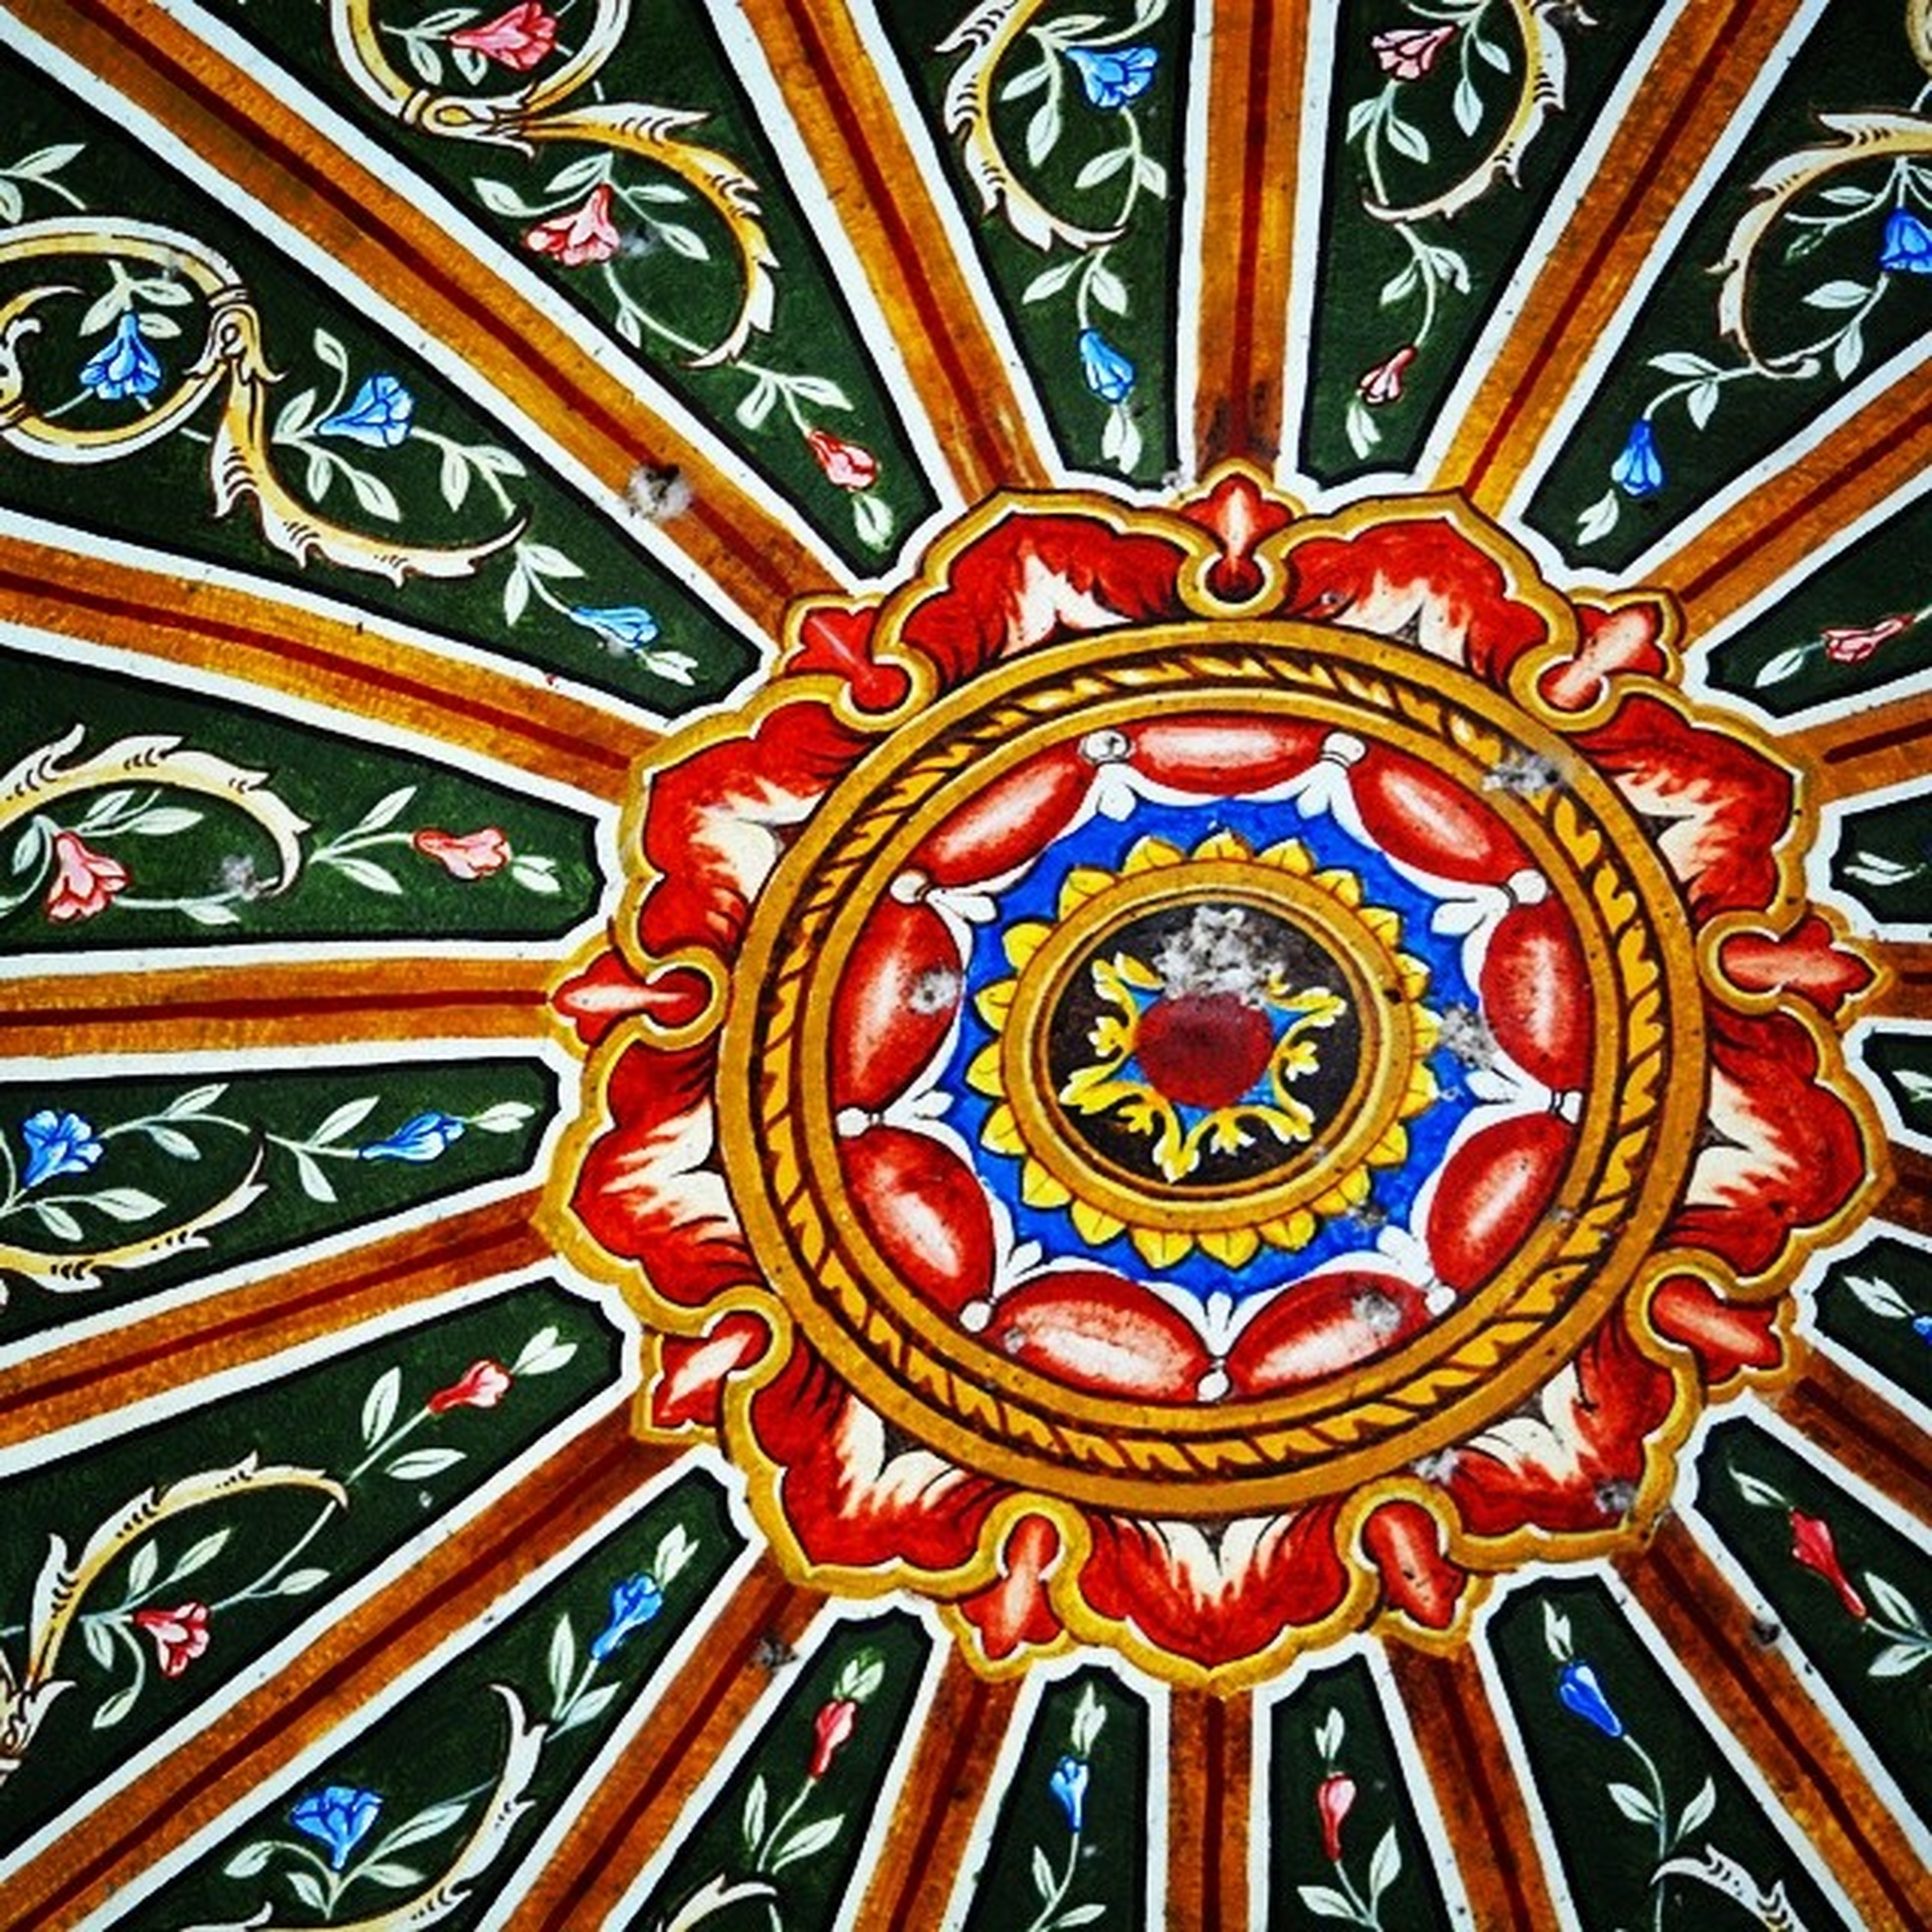 indoors, design, pattern, ceiling, ornate, art and craft, low angle view, art, creativity, multi colored, architecture, decoration, floral pattern, architectural feature, illuminated, full frame, backgrounds, built structure, directly below, stained glass